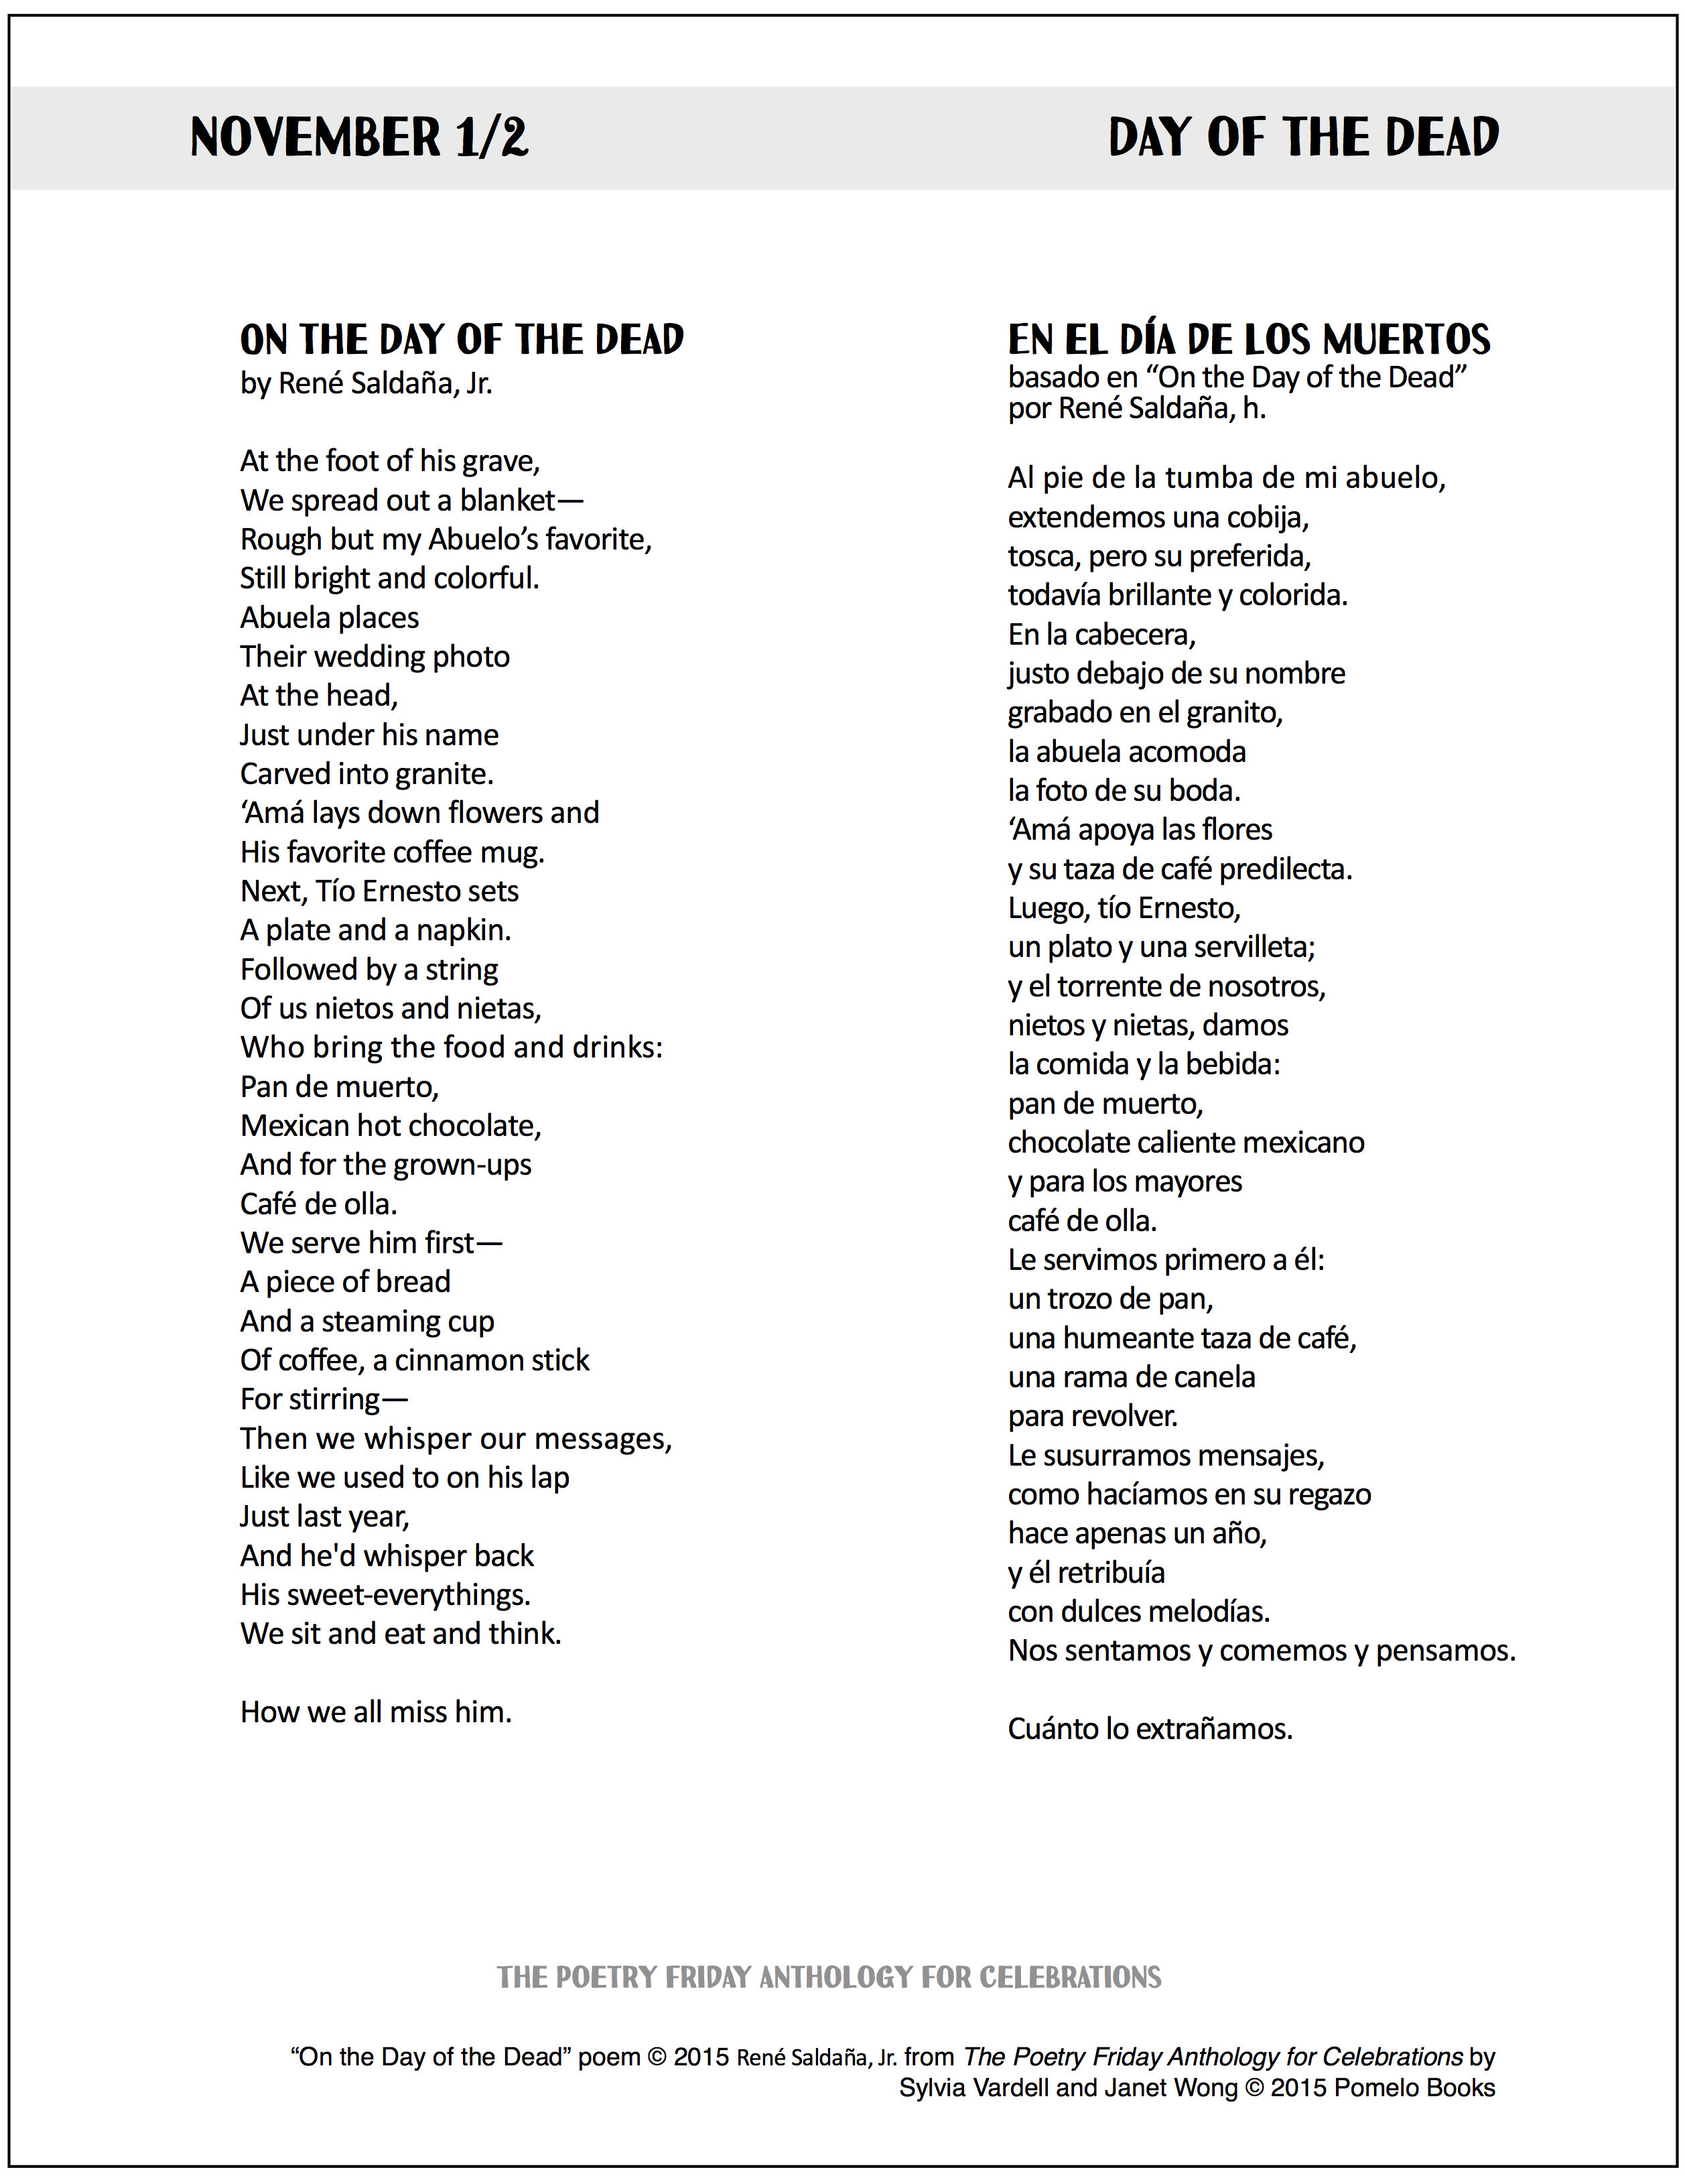 Day Of The Dead Poems Its the poem of the day its definitely the poem of the day everybody reads it with great care and attention. day of the dead poems